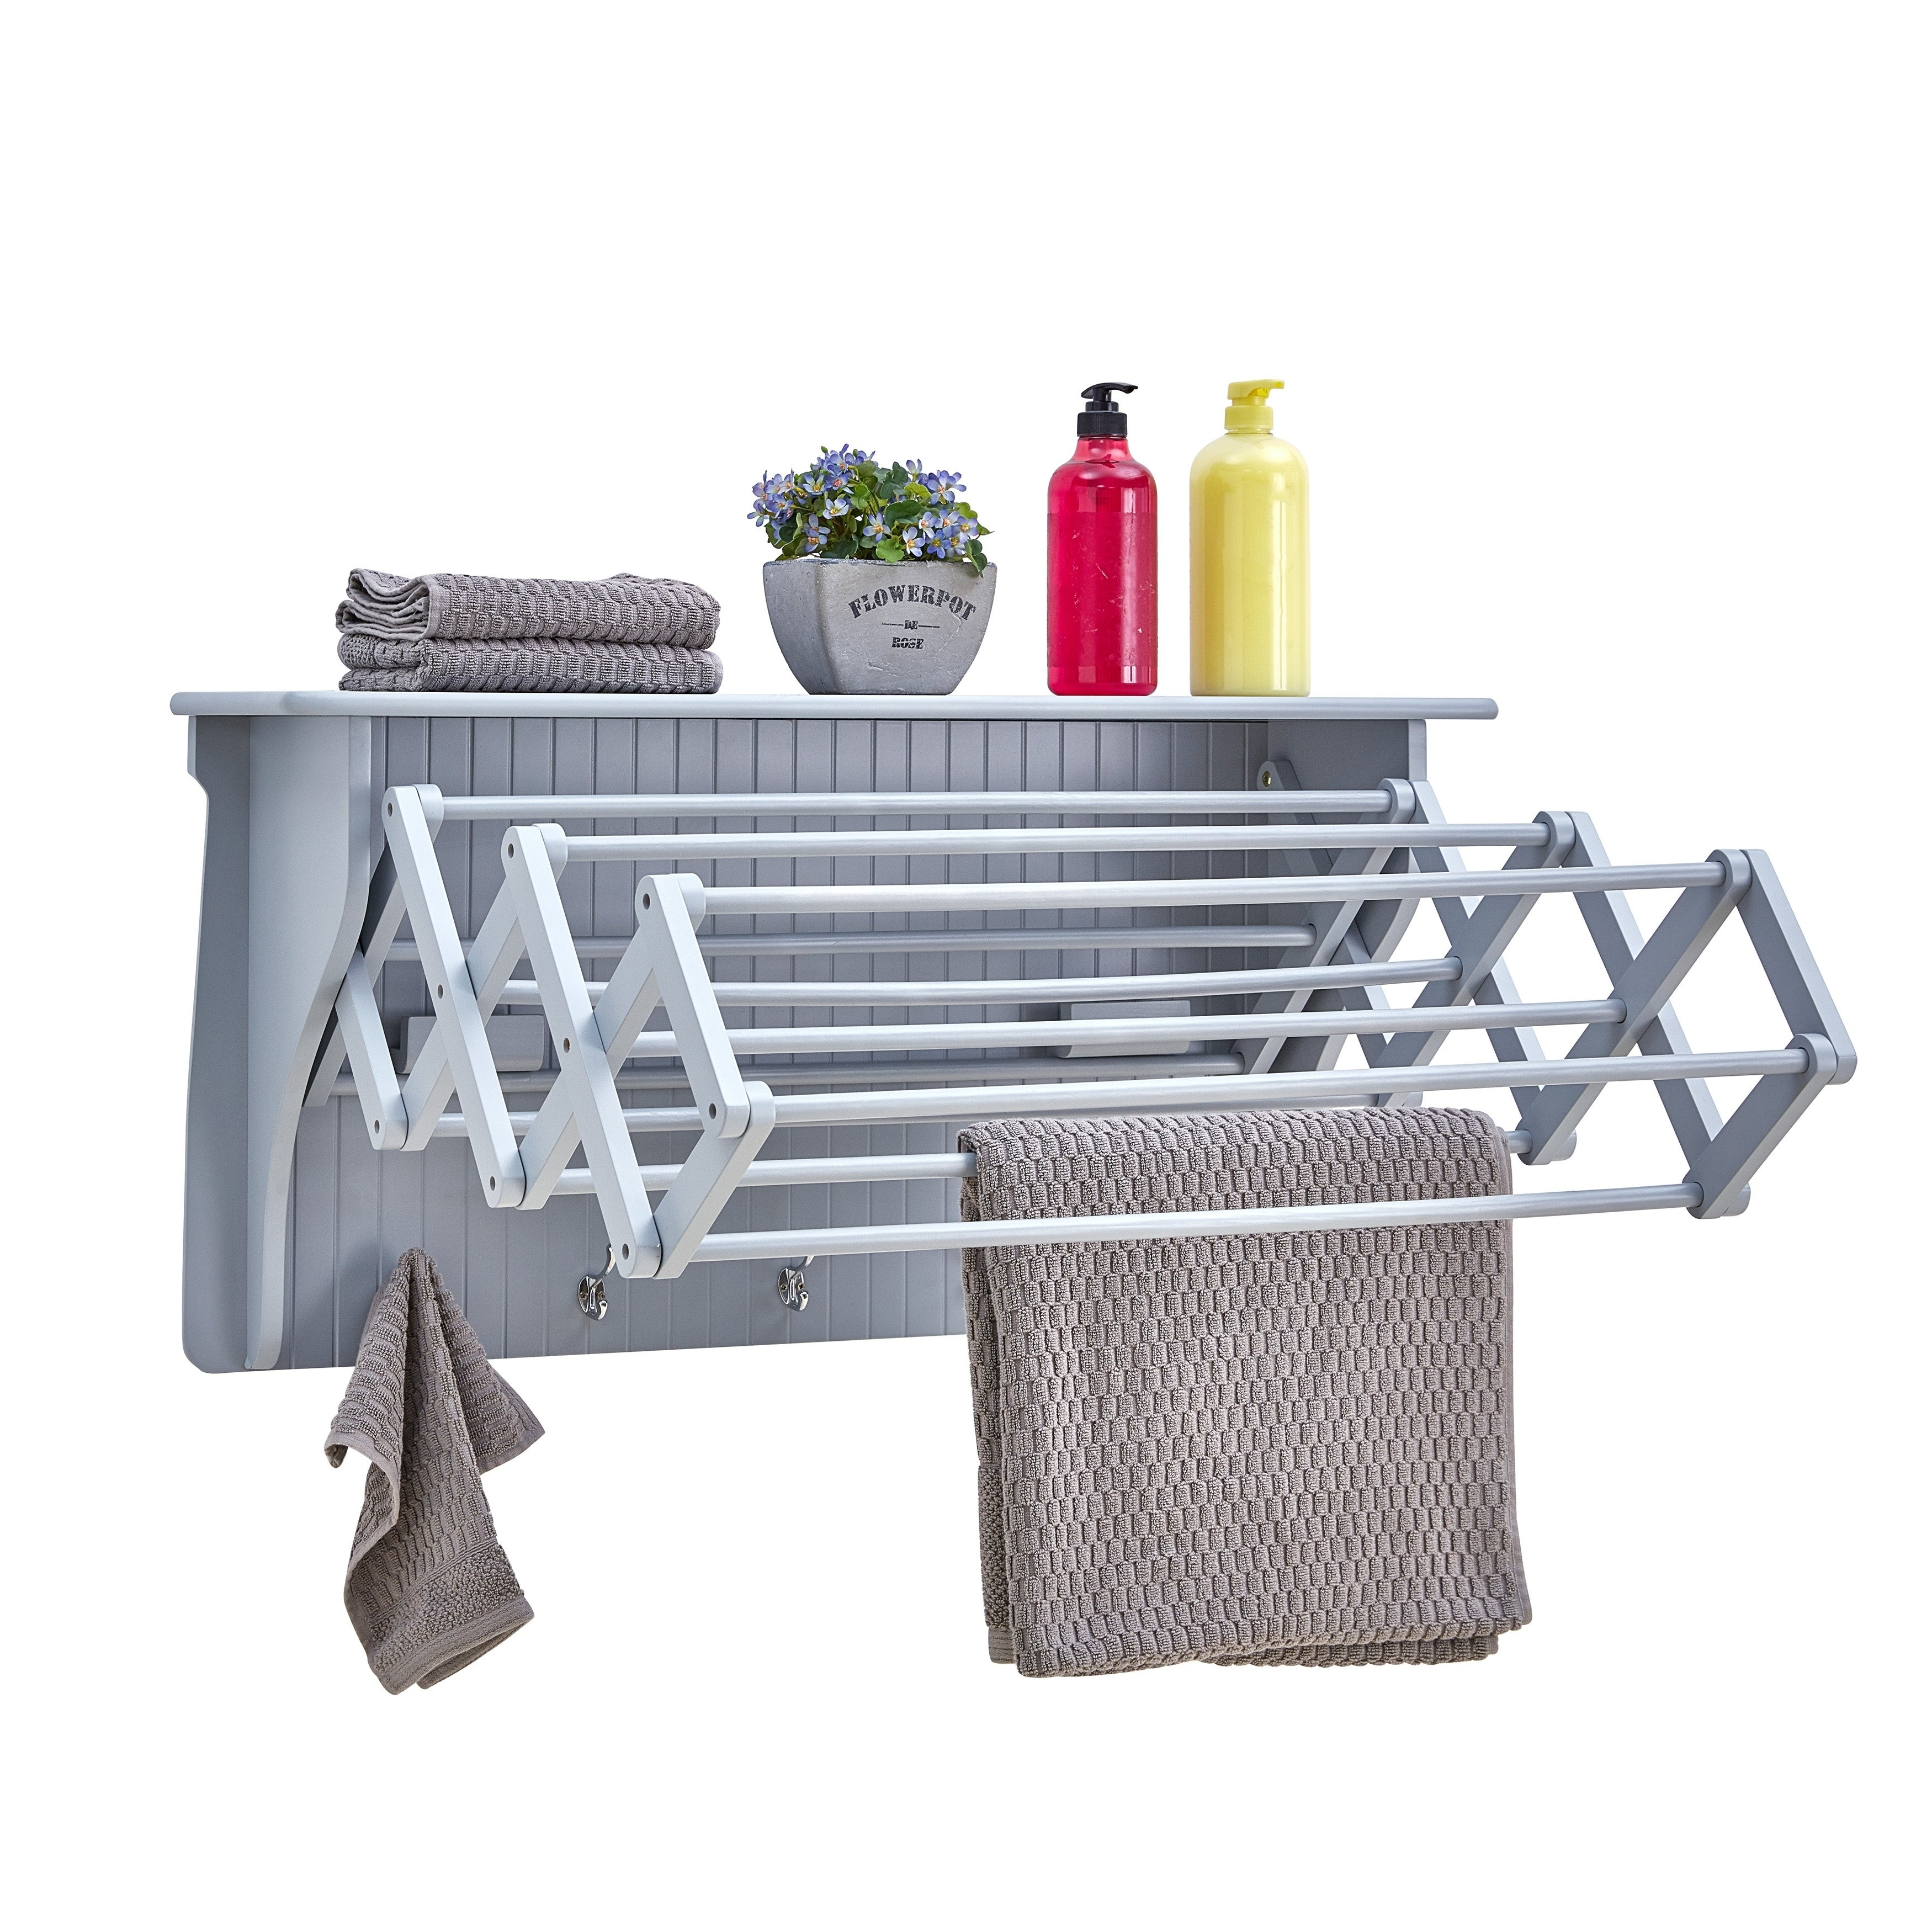 Drying Racks Laundry | Shop our Best Housewares Deals Online at ...